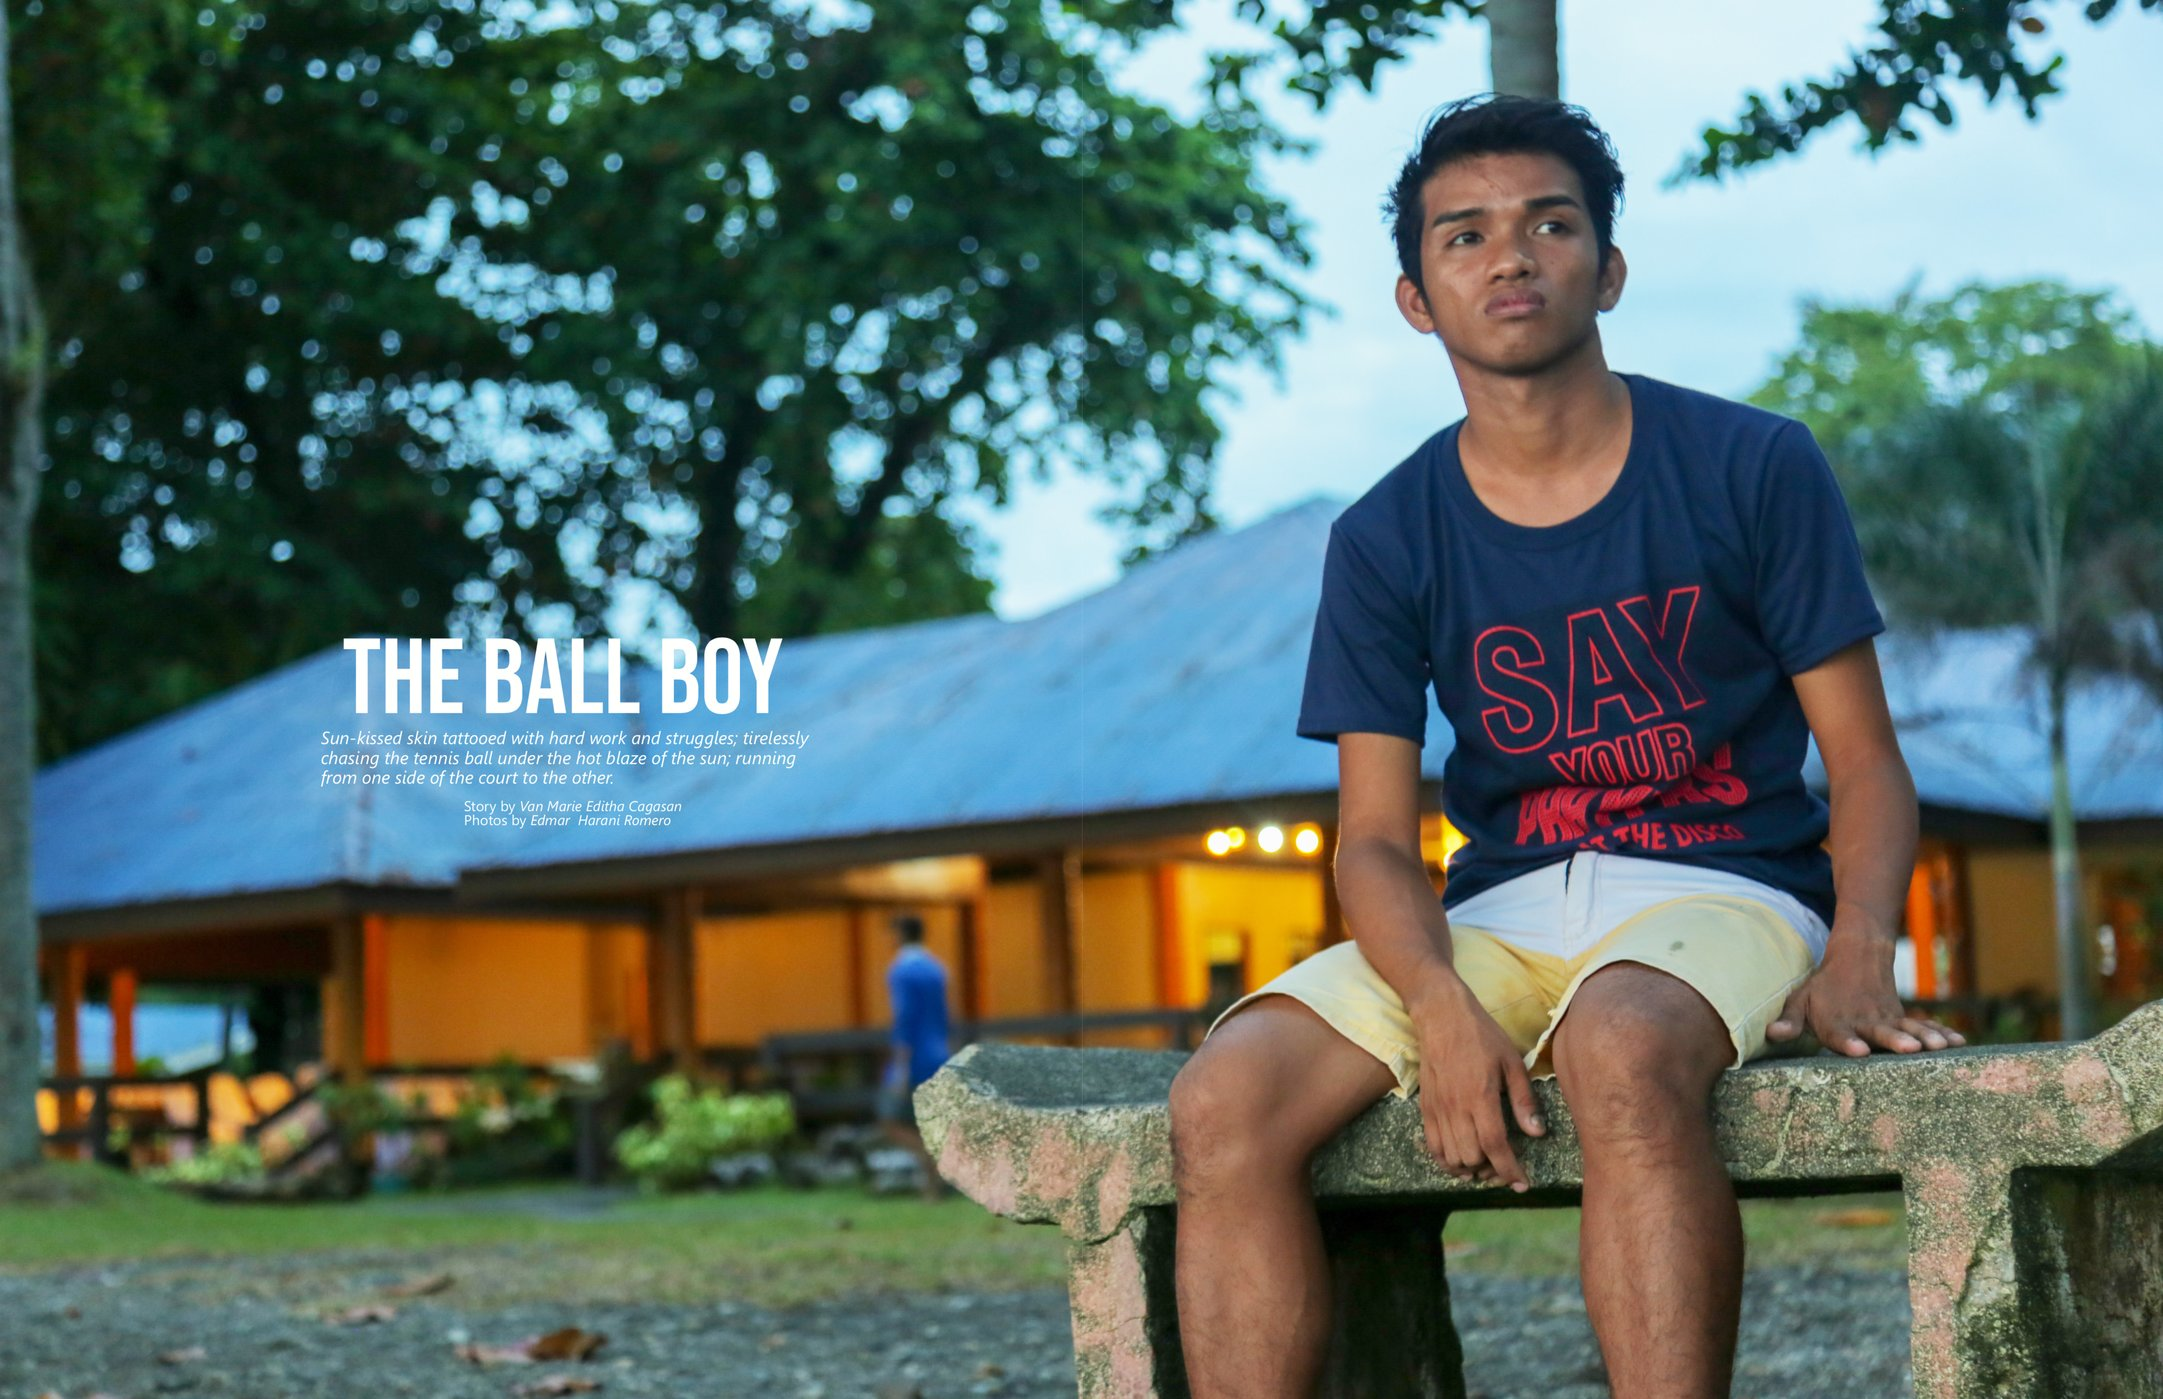 VISCAN BALL BOY. As a ball boy, Aldrick's job is to retrieve and supply tennis balls while the athletes play.